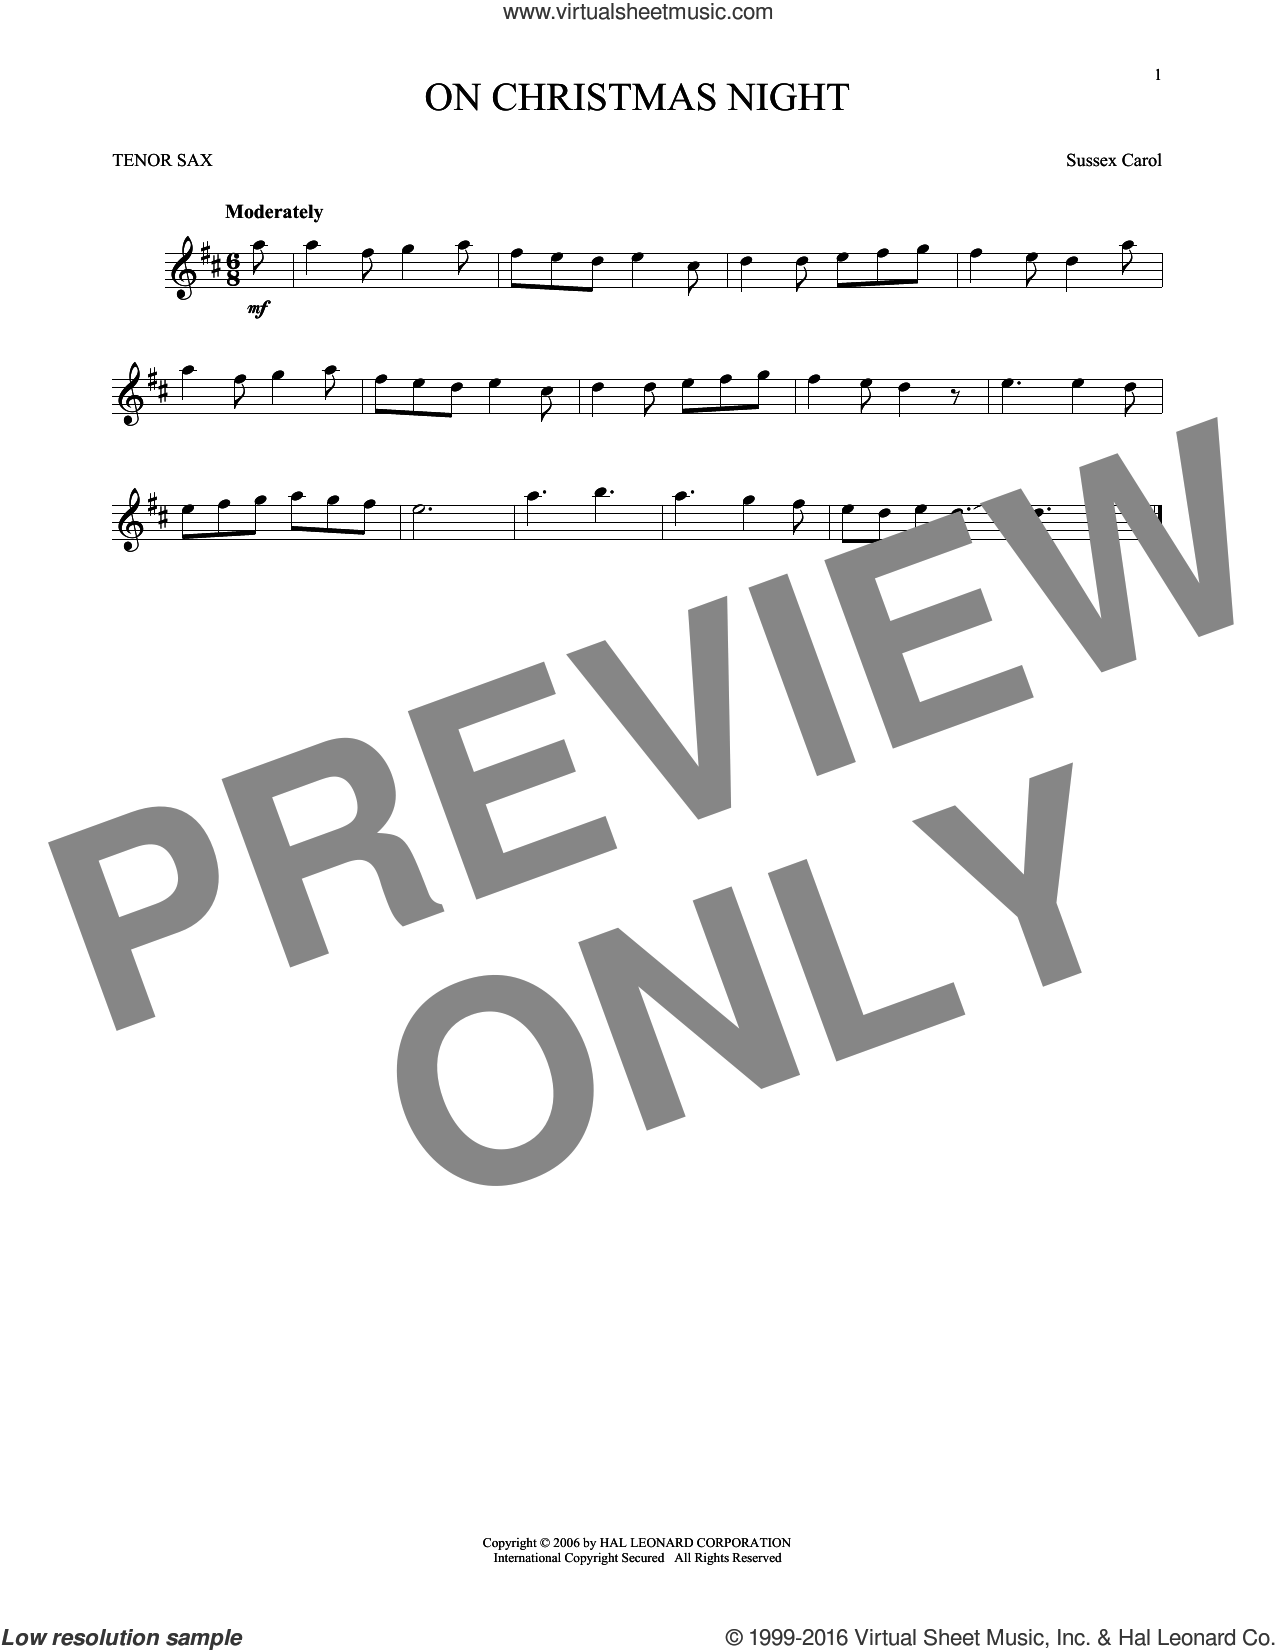 On Christmas Night sheet music for tenor saxophone solo, intermediate skill level